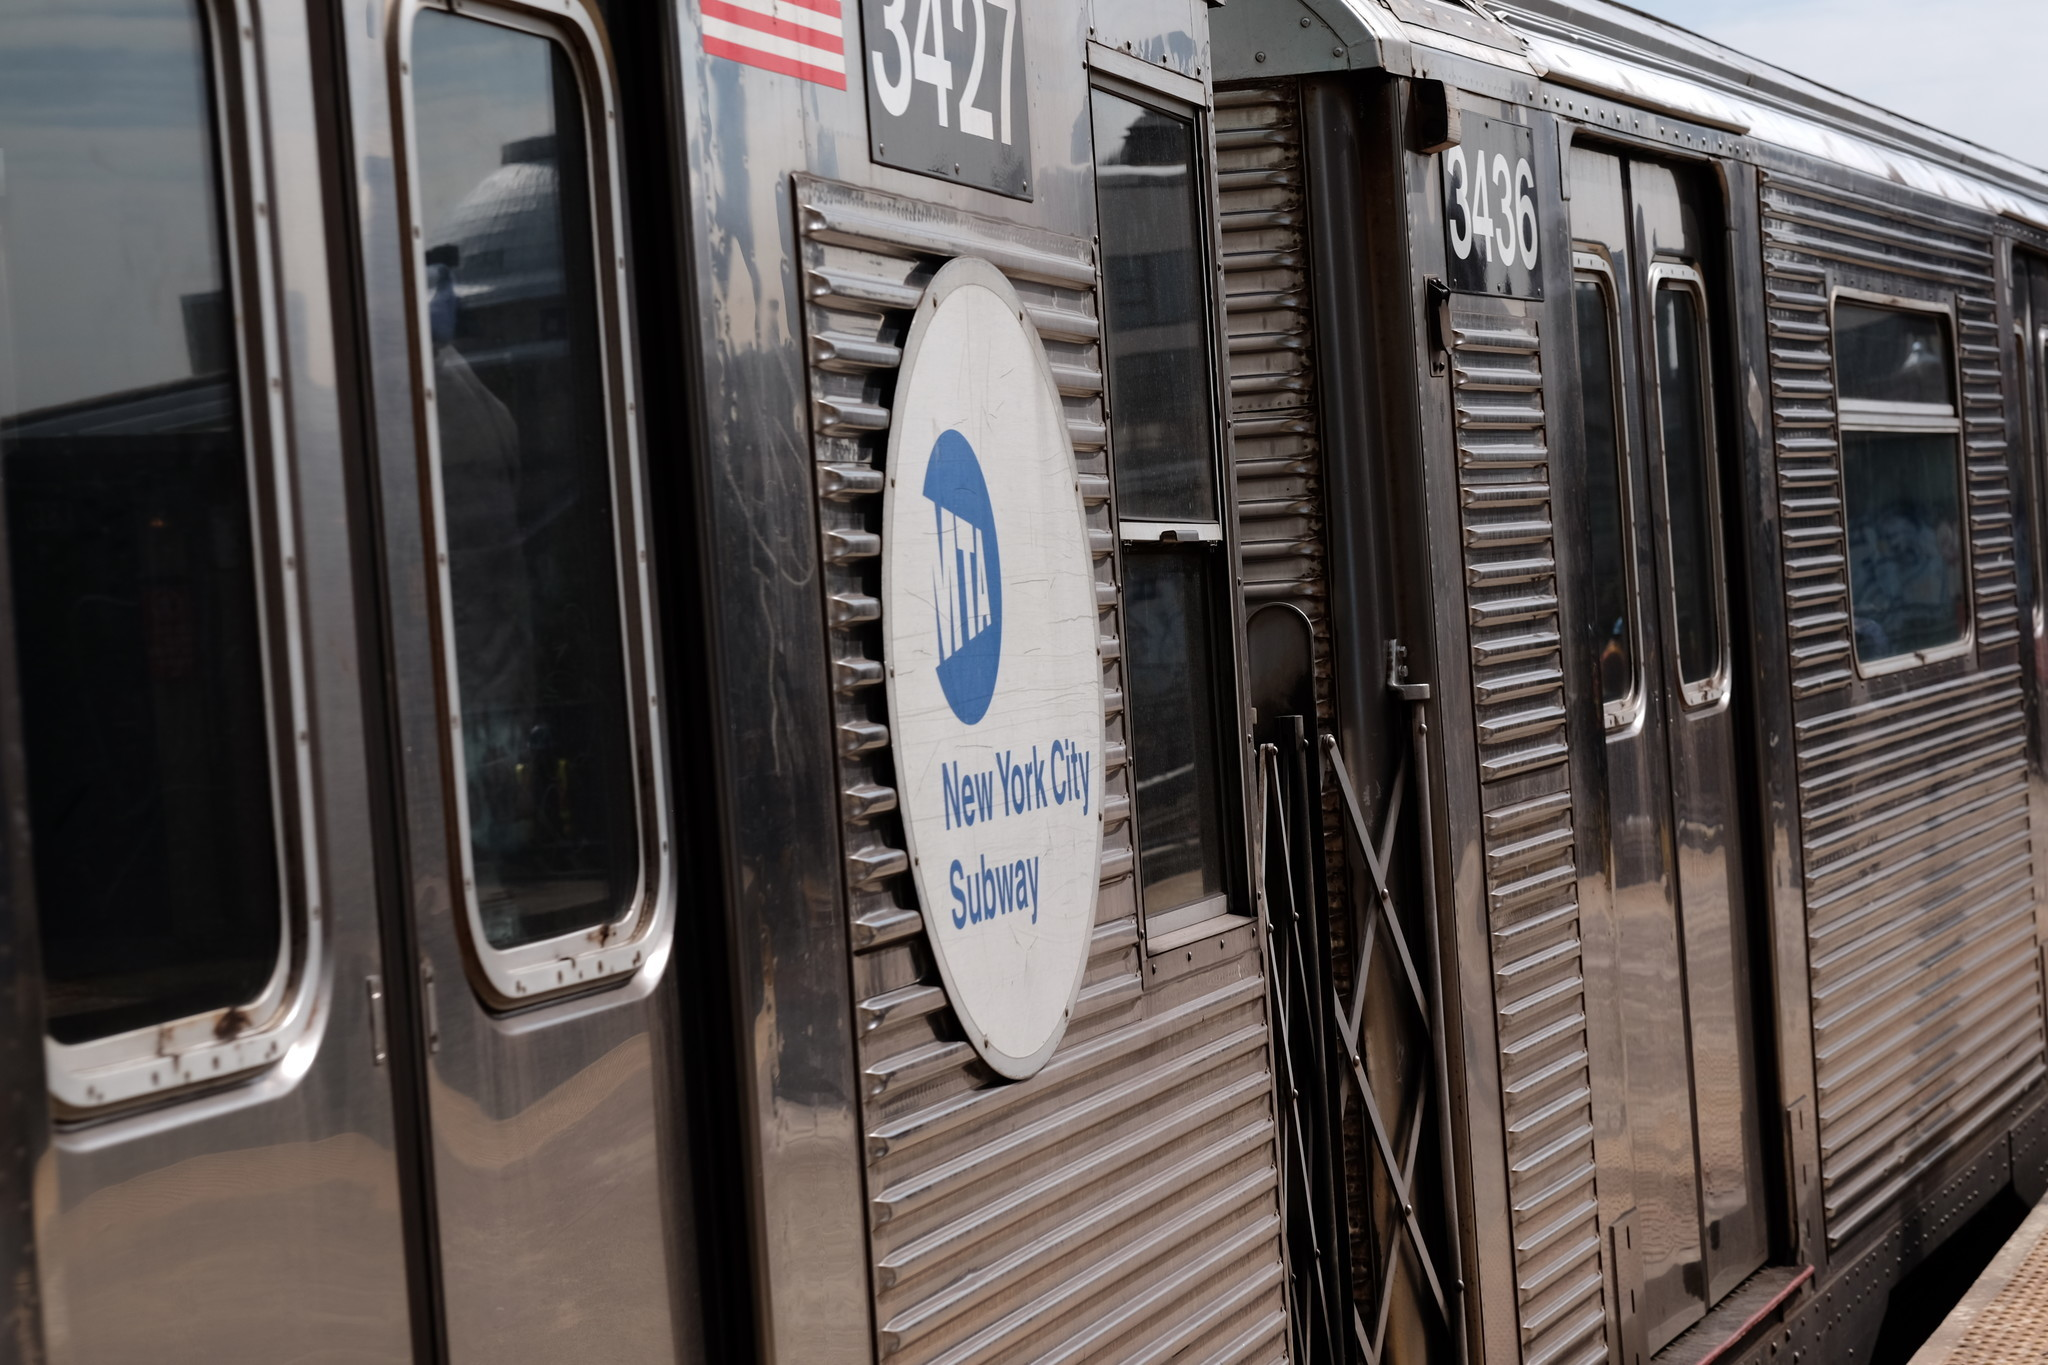 Teen shot in the chest on subway train in Queens